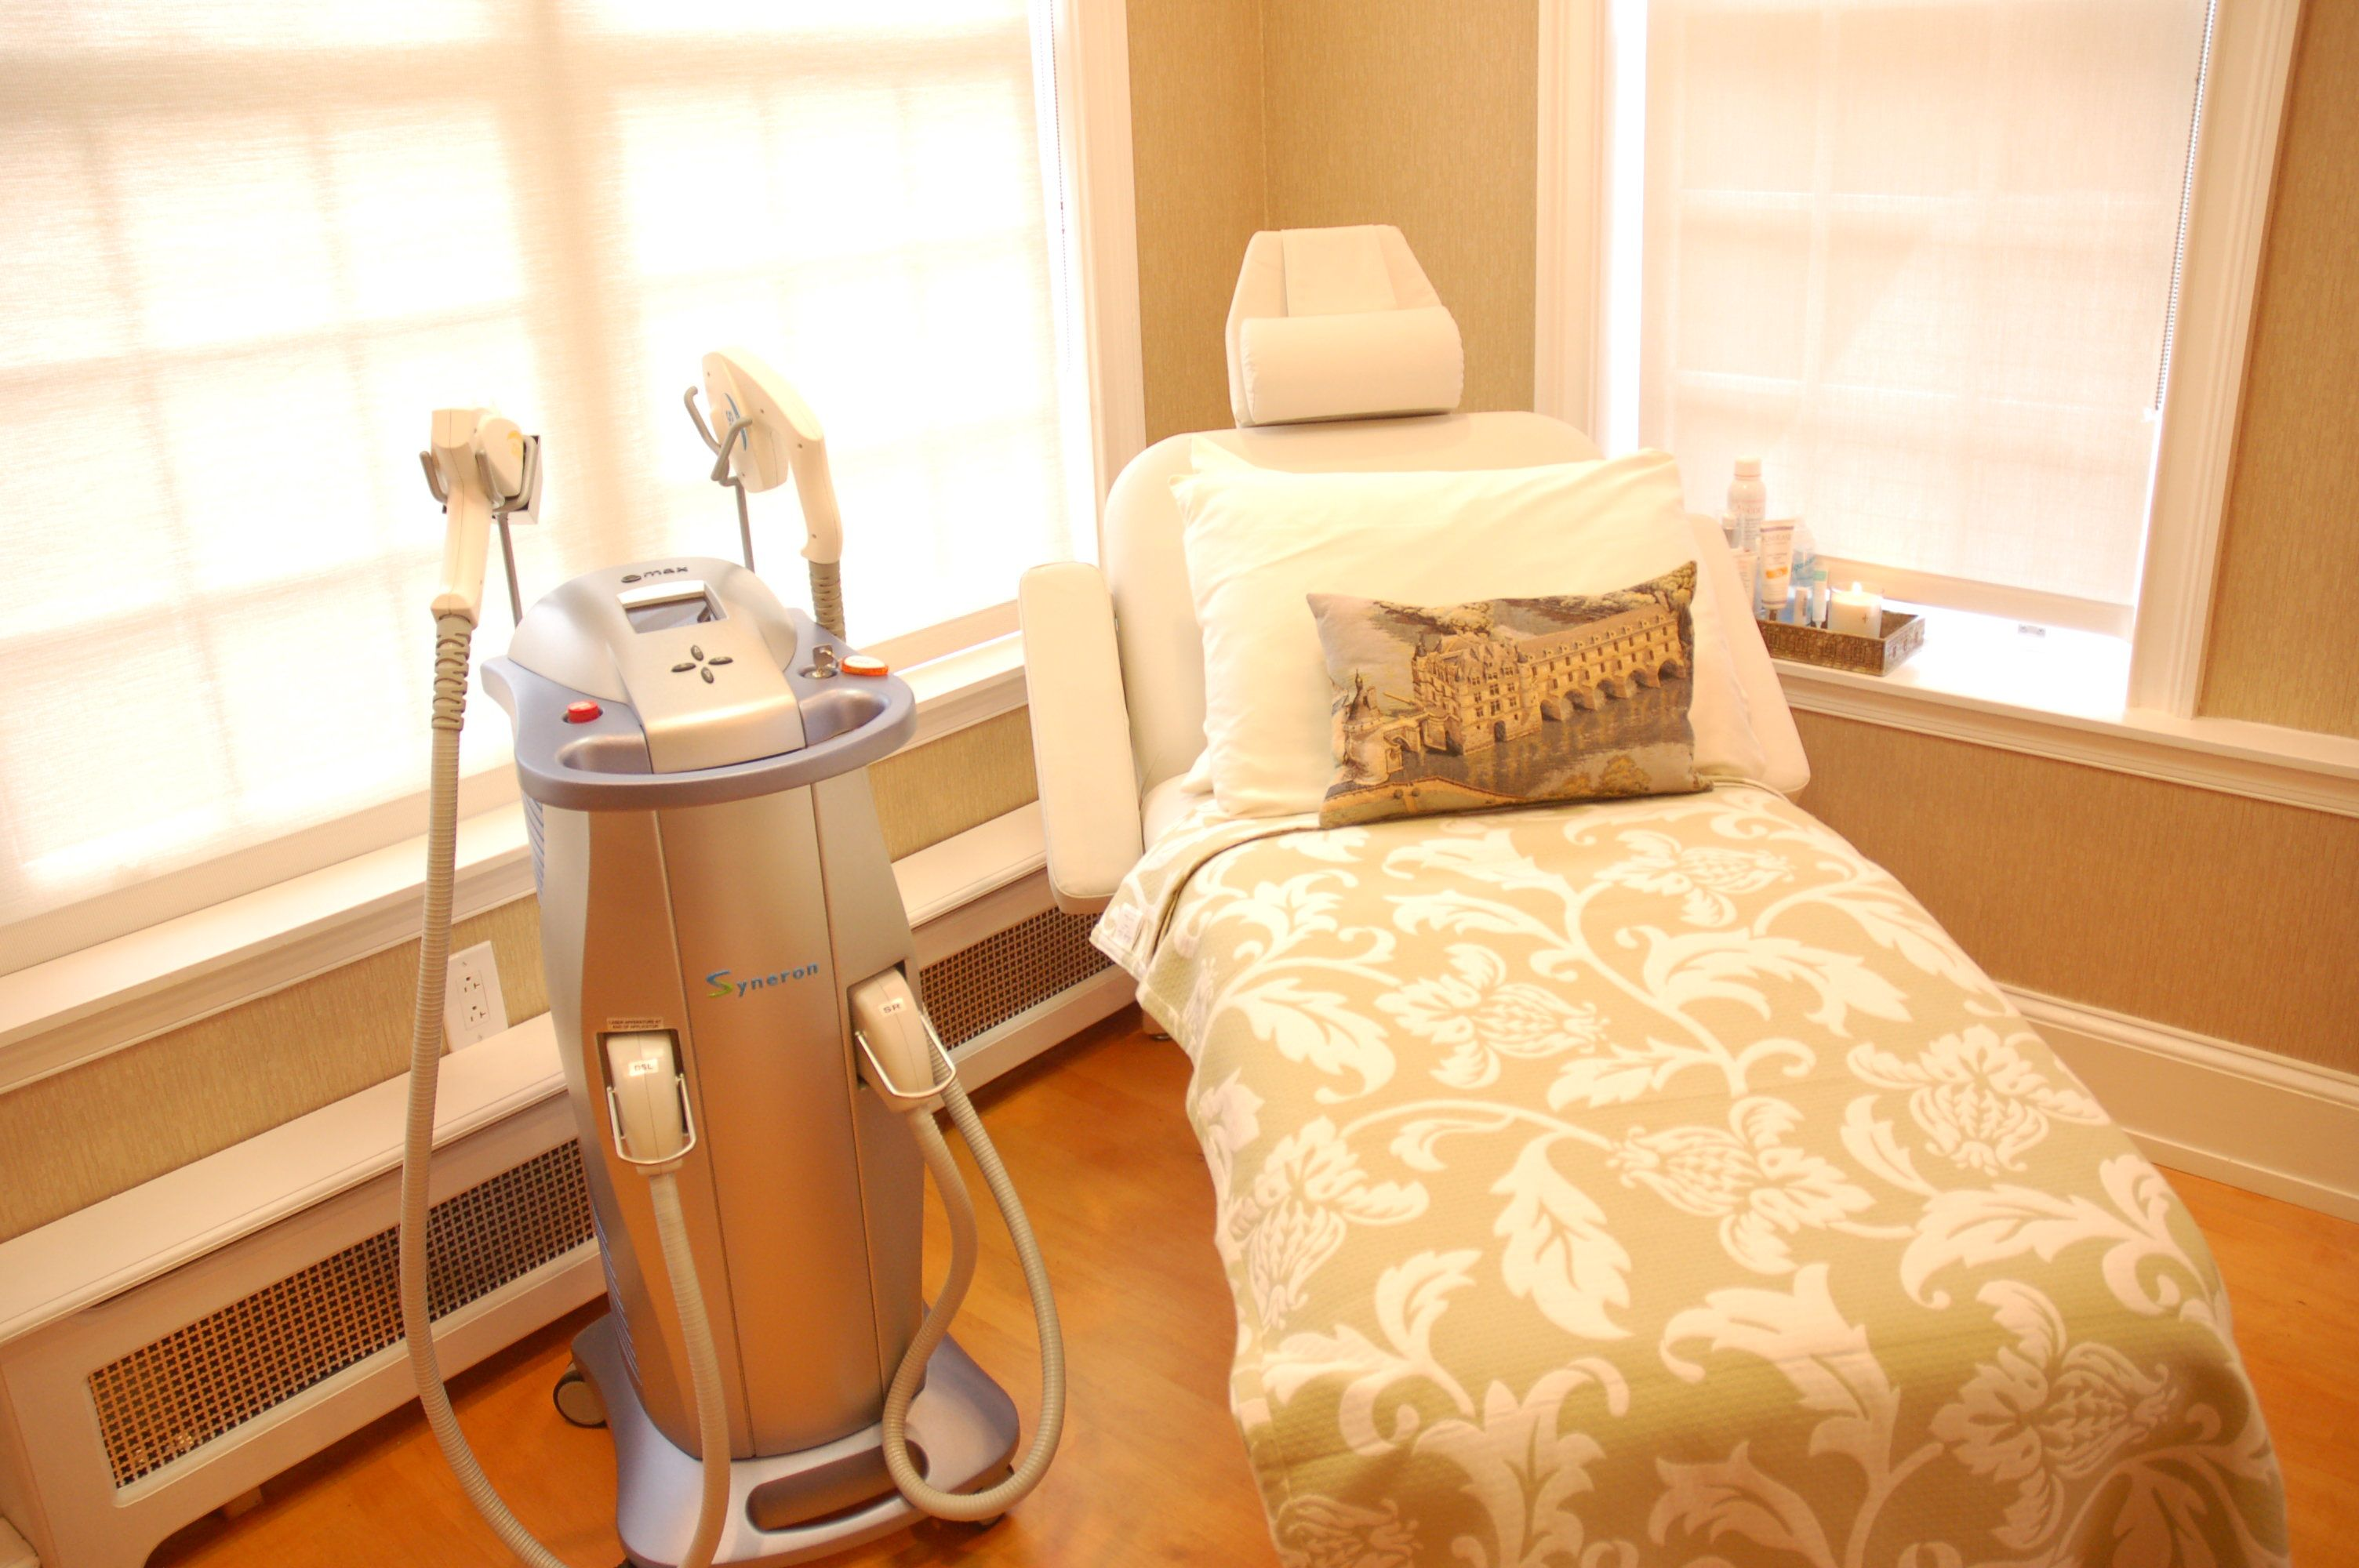 Dermacenter medical spa located within the rittenhouse